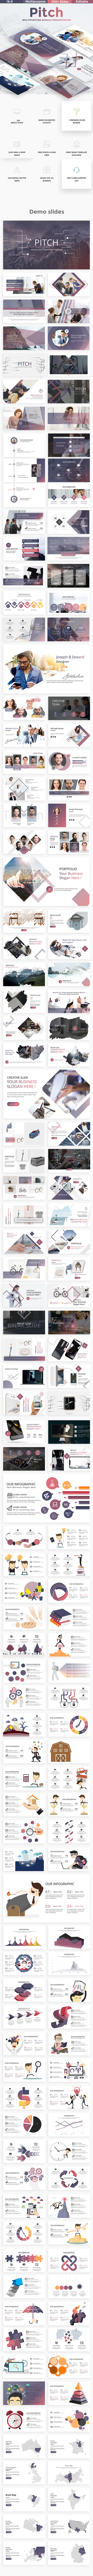 Pitch Multipurpose Powerpoint Template - Pitch Deck PowerPoint Templates